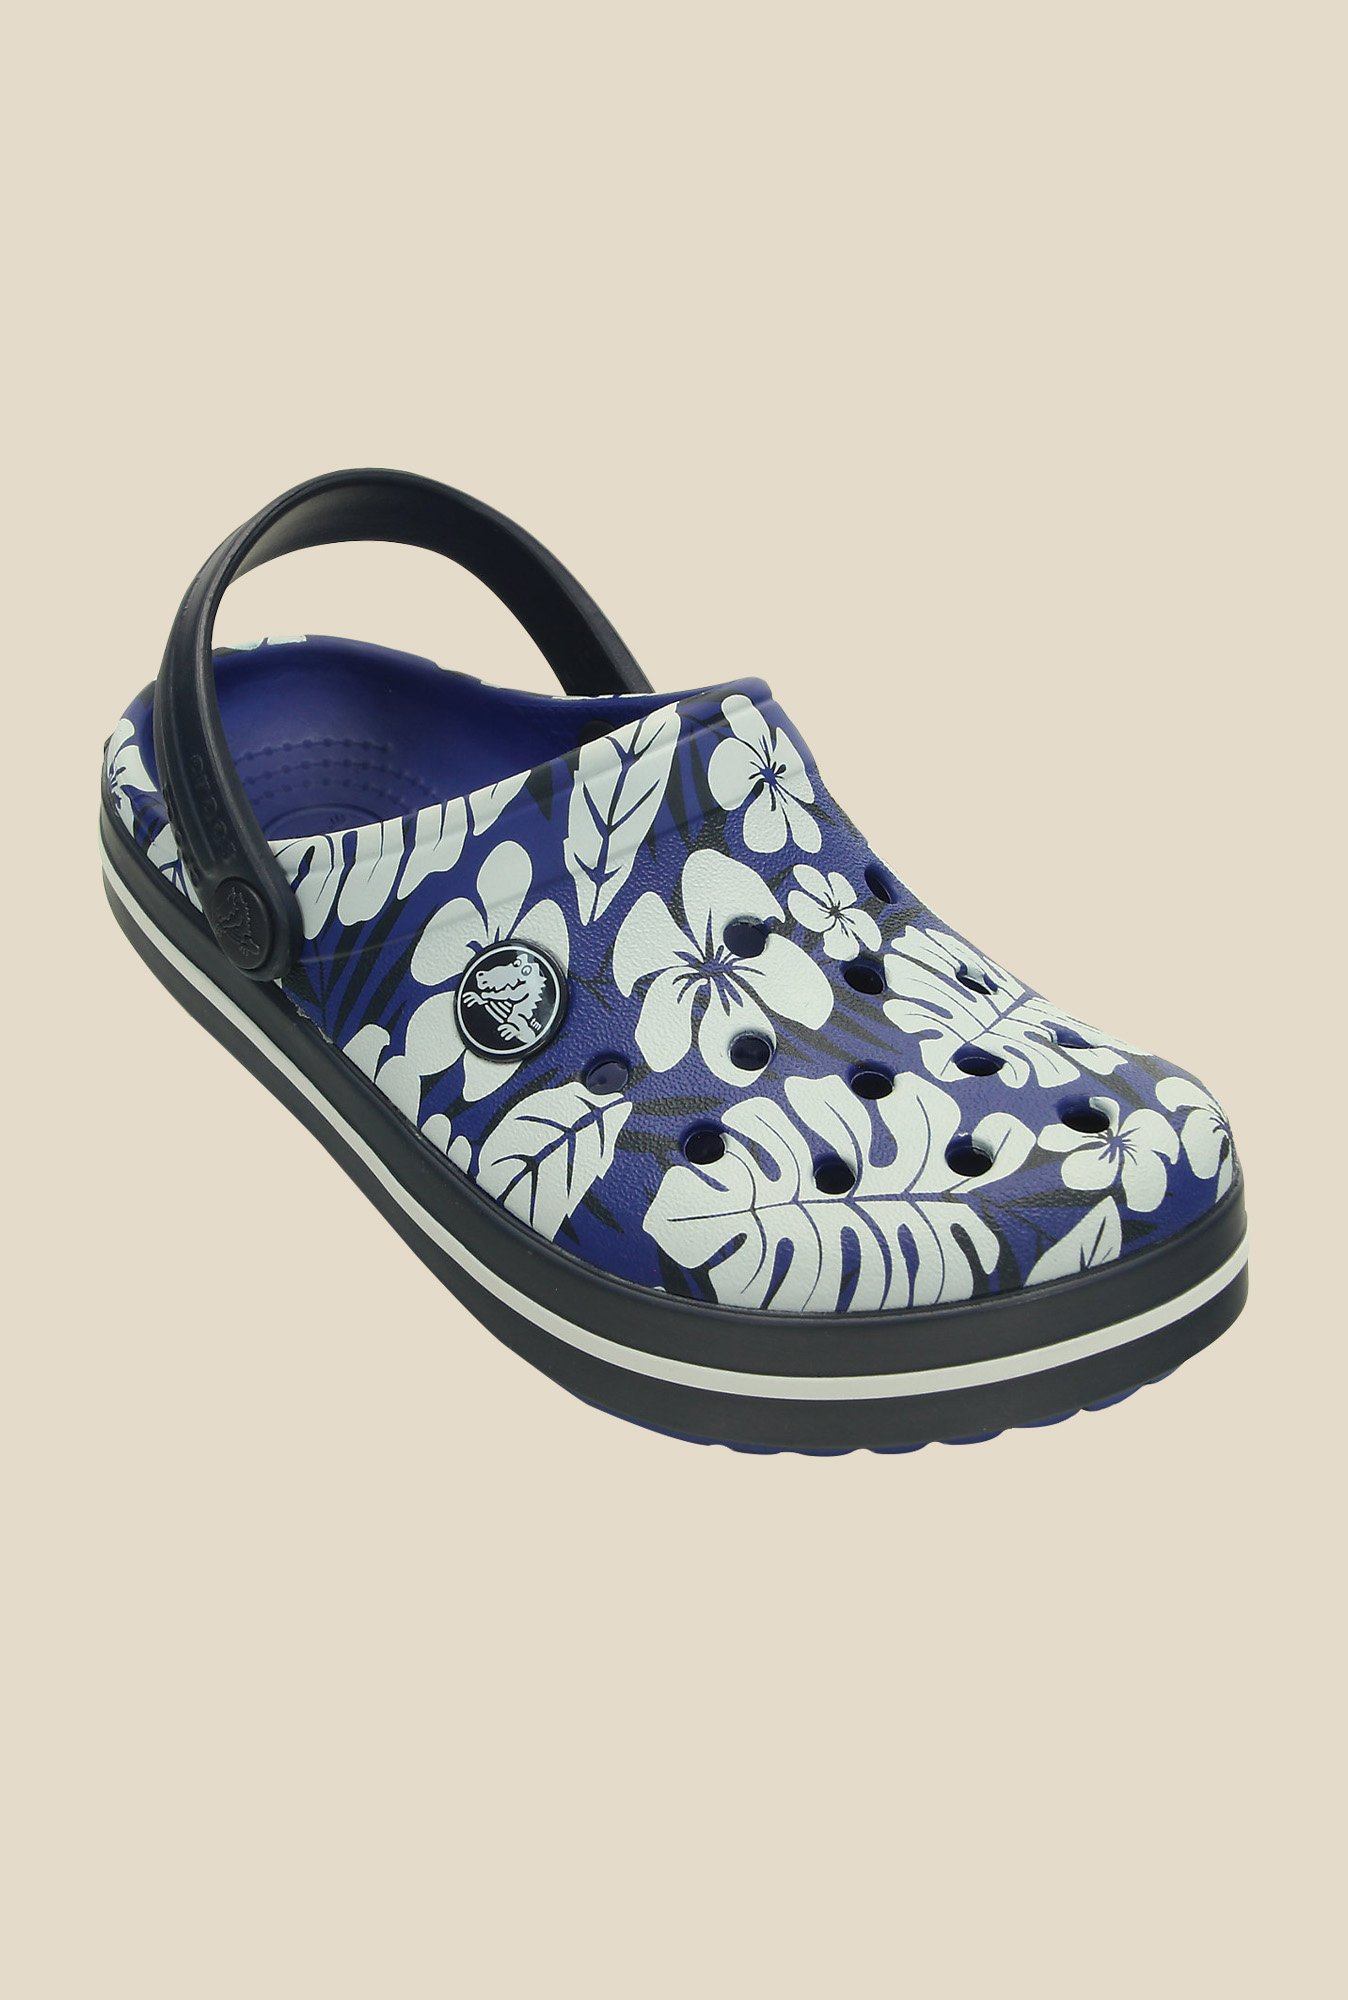 Crocs Crocband Tropical Print Cerulean Blue & Navy Clogs